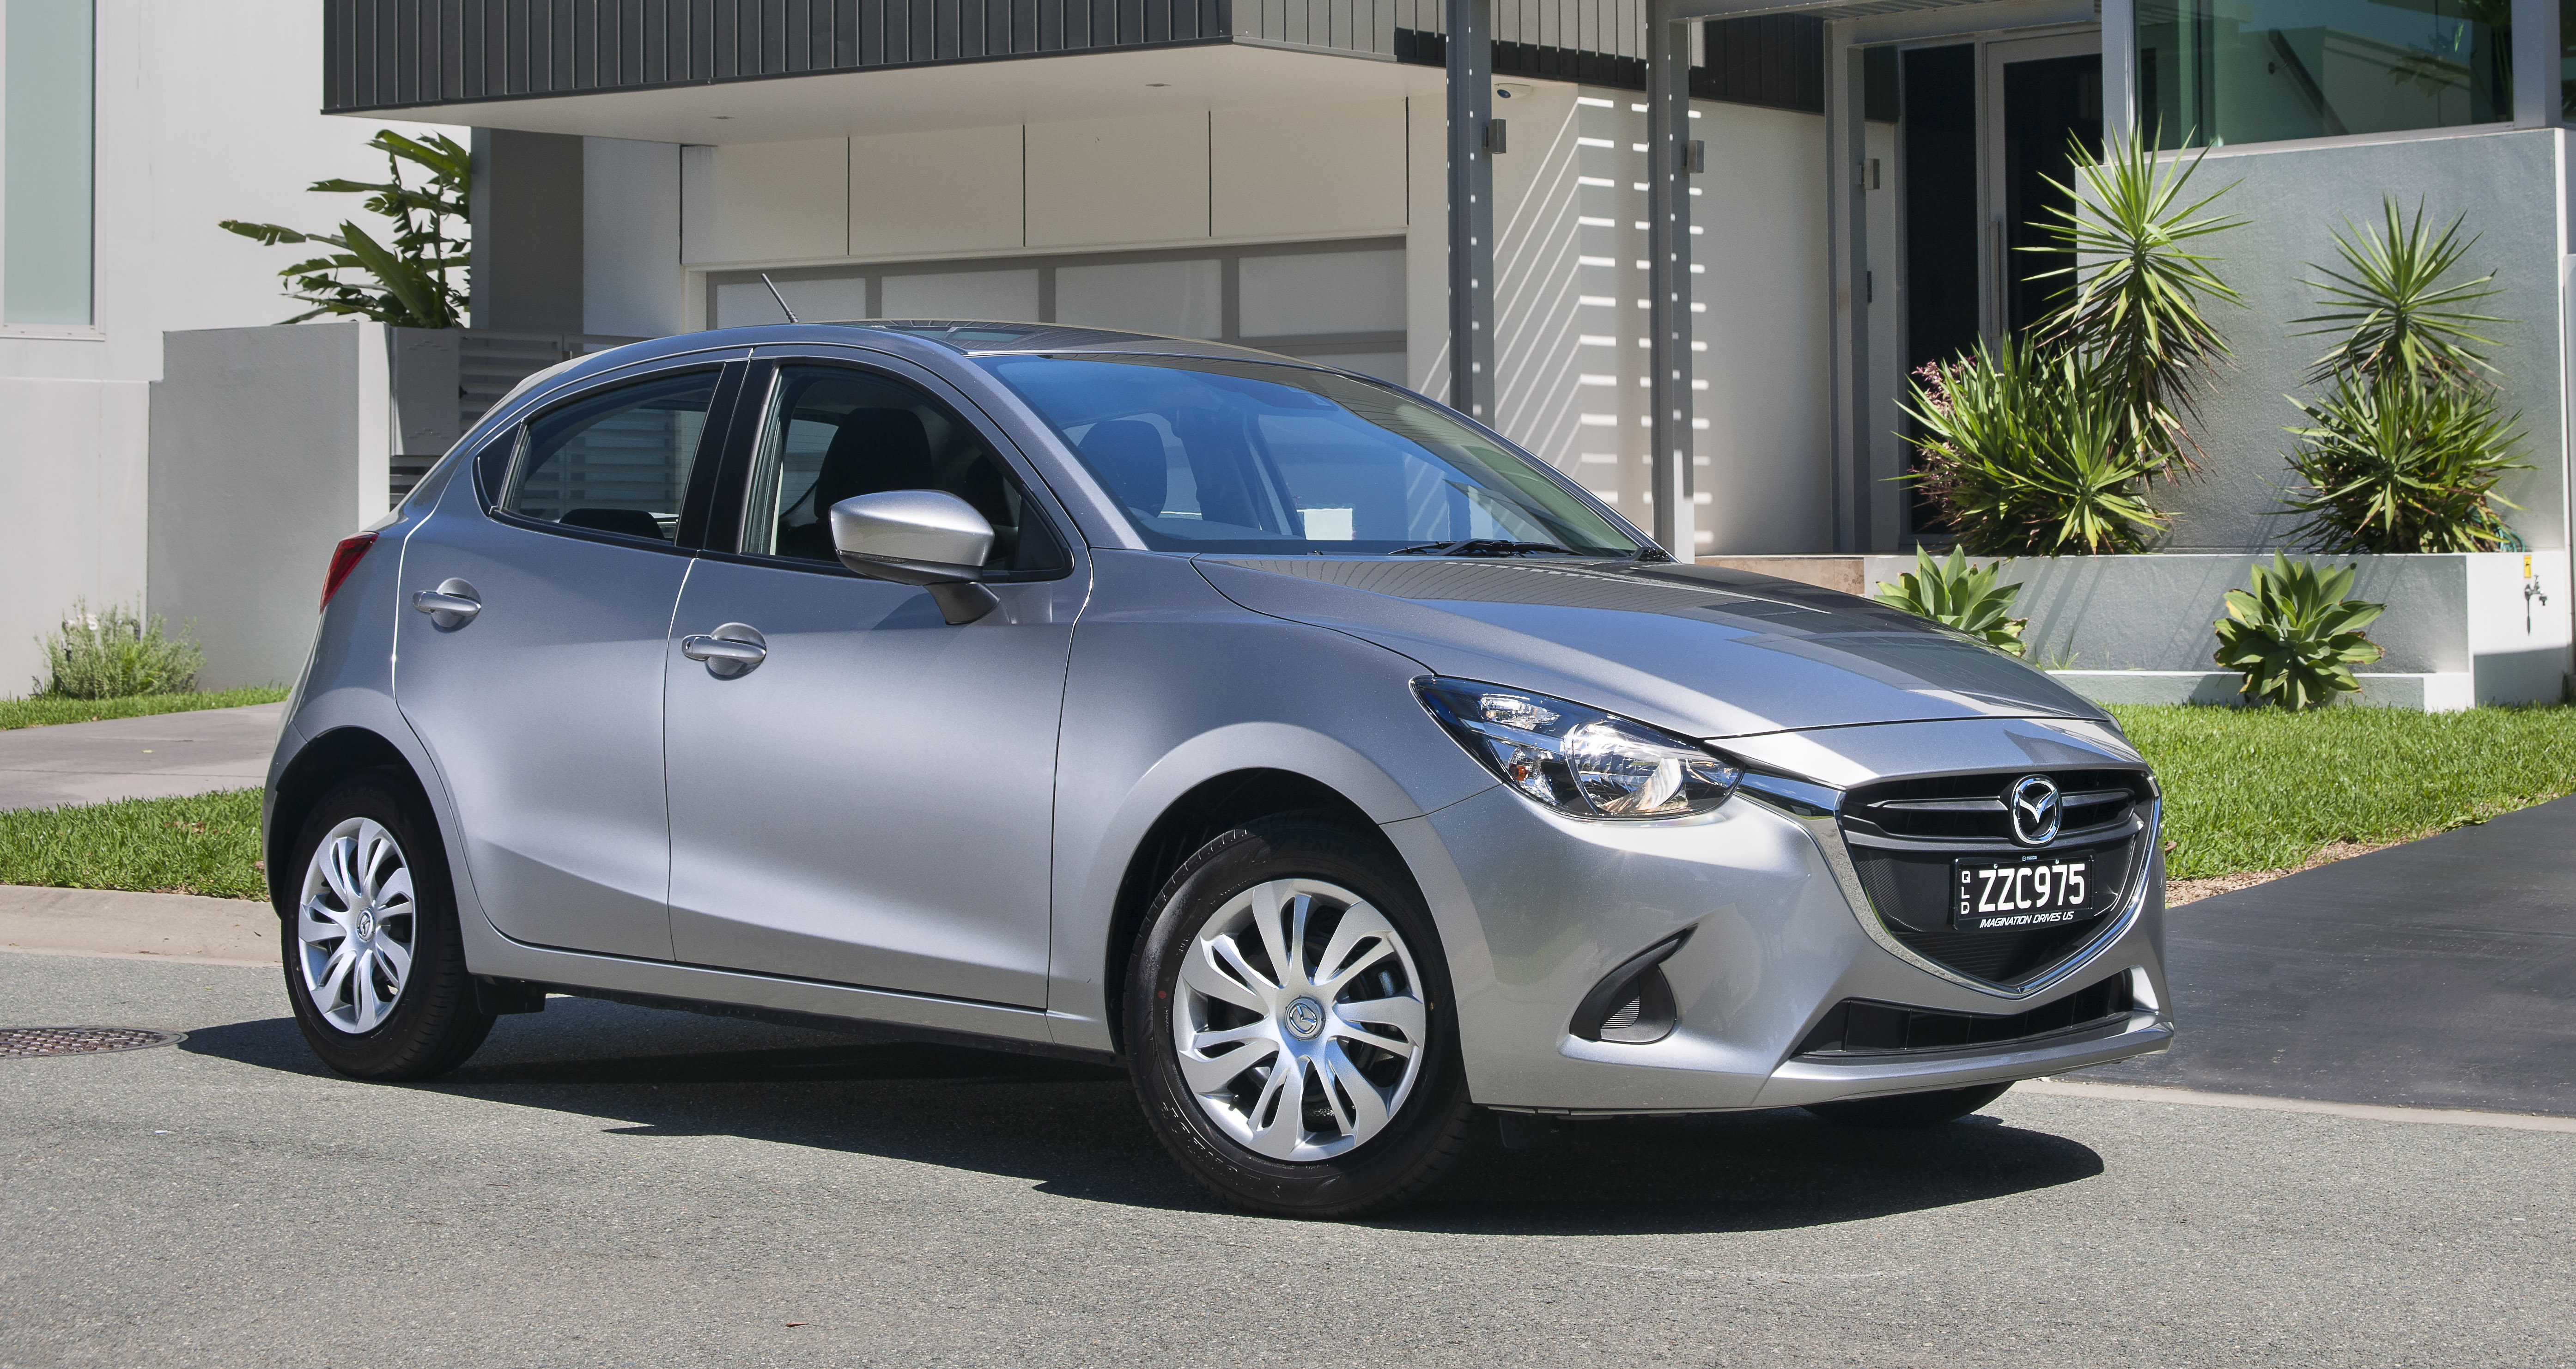 2017 Mazda 2 Pricing And Specs Standard Aeb Improved Dynamics And New Range Topper Photos 1